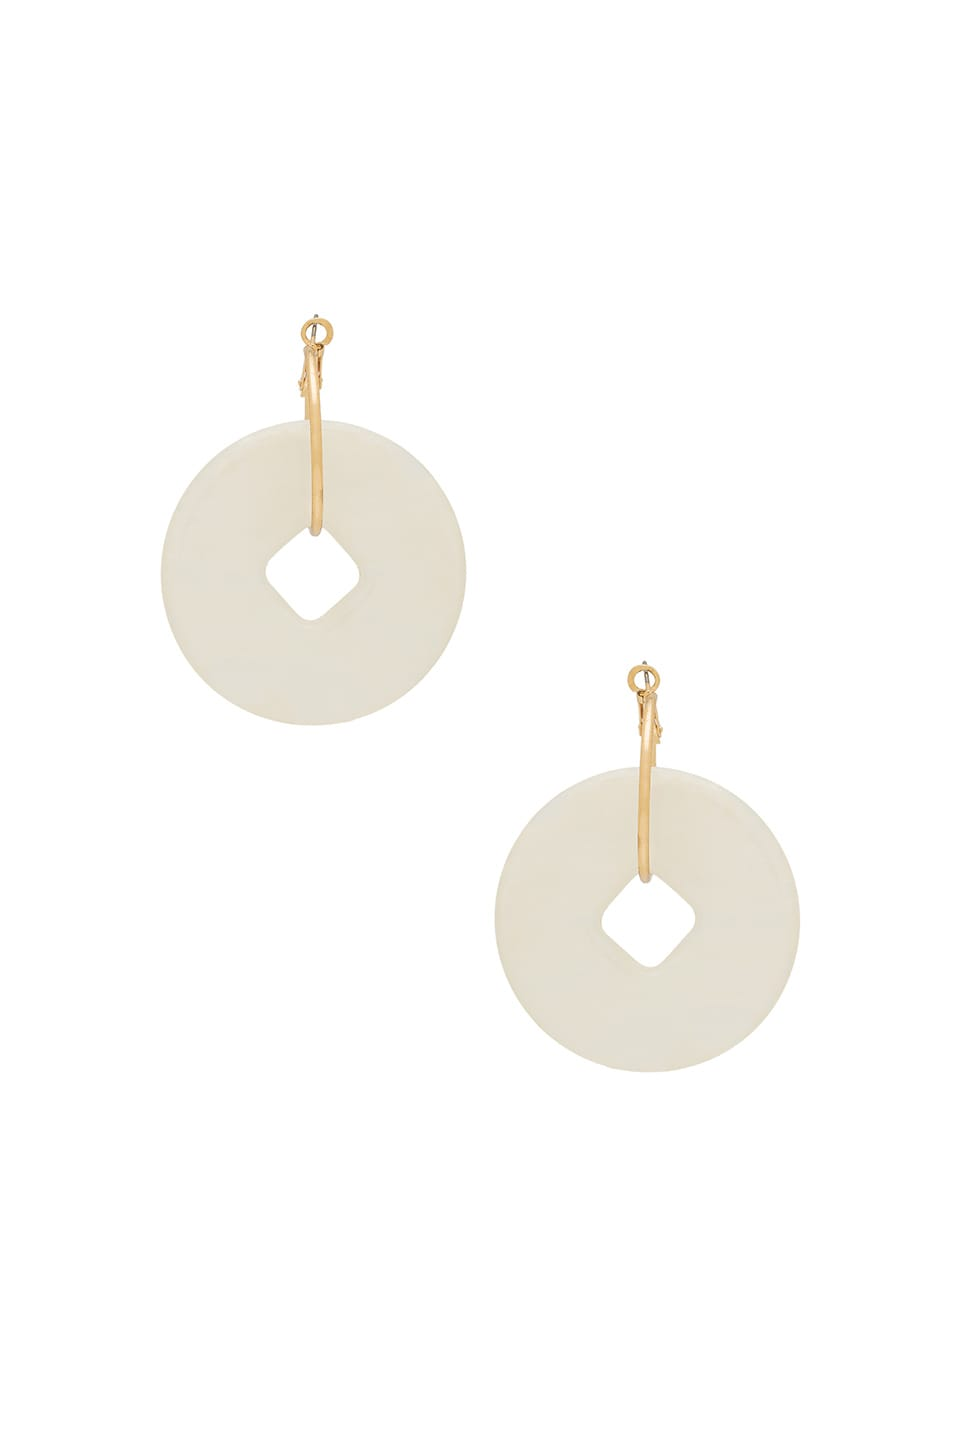 Amber Sceats X REVOLVE Peru Earrings in White